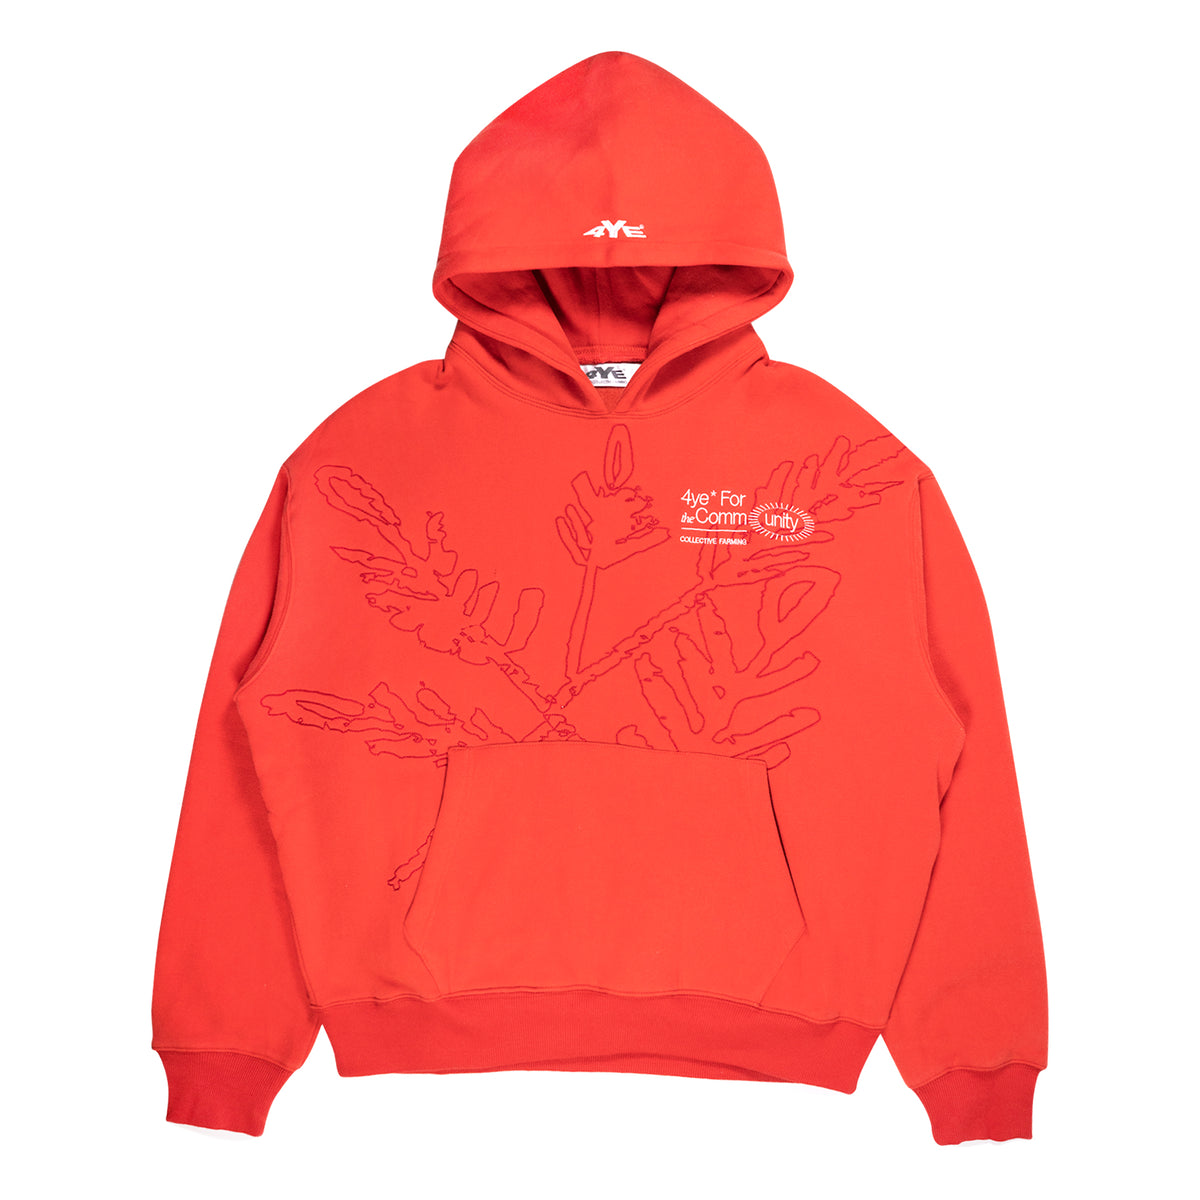 "<img src=""hoodie.jpg"" alt=""red sweater with logo"">"